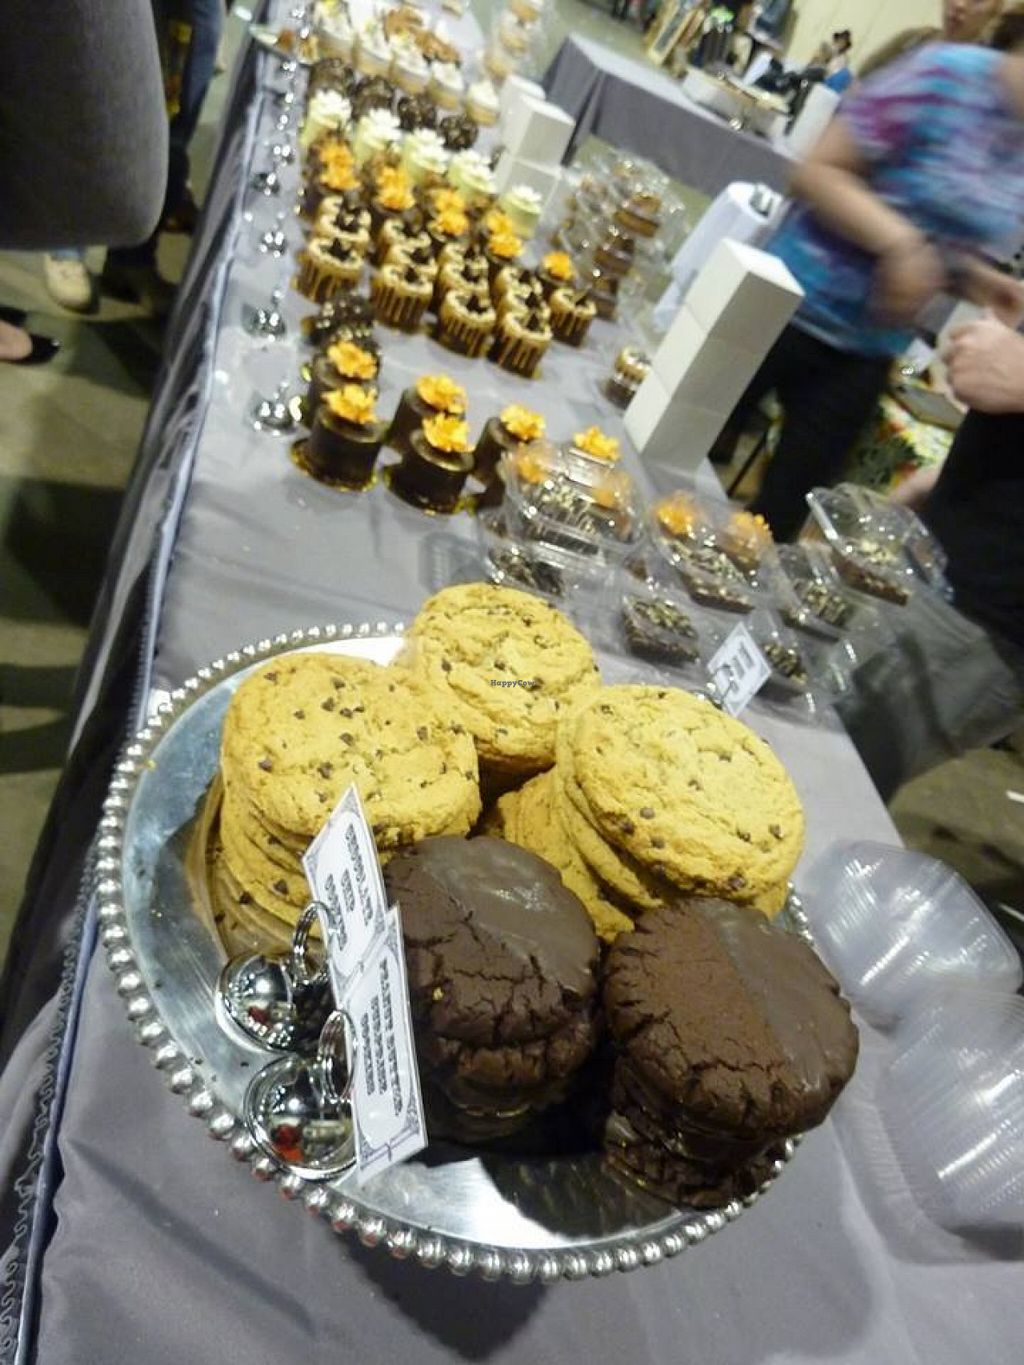 """Photo of Vegan Treats Bakery  by <a href=""""/members/profile/MizzB"""">MizzB</a> <br/>Vegan Treats <br/> February 2, 2016  - <a href='/contact/abuse/image/6784/134729'>Report</a>"""